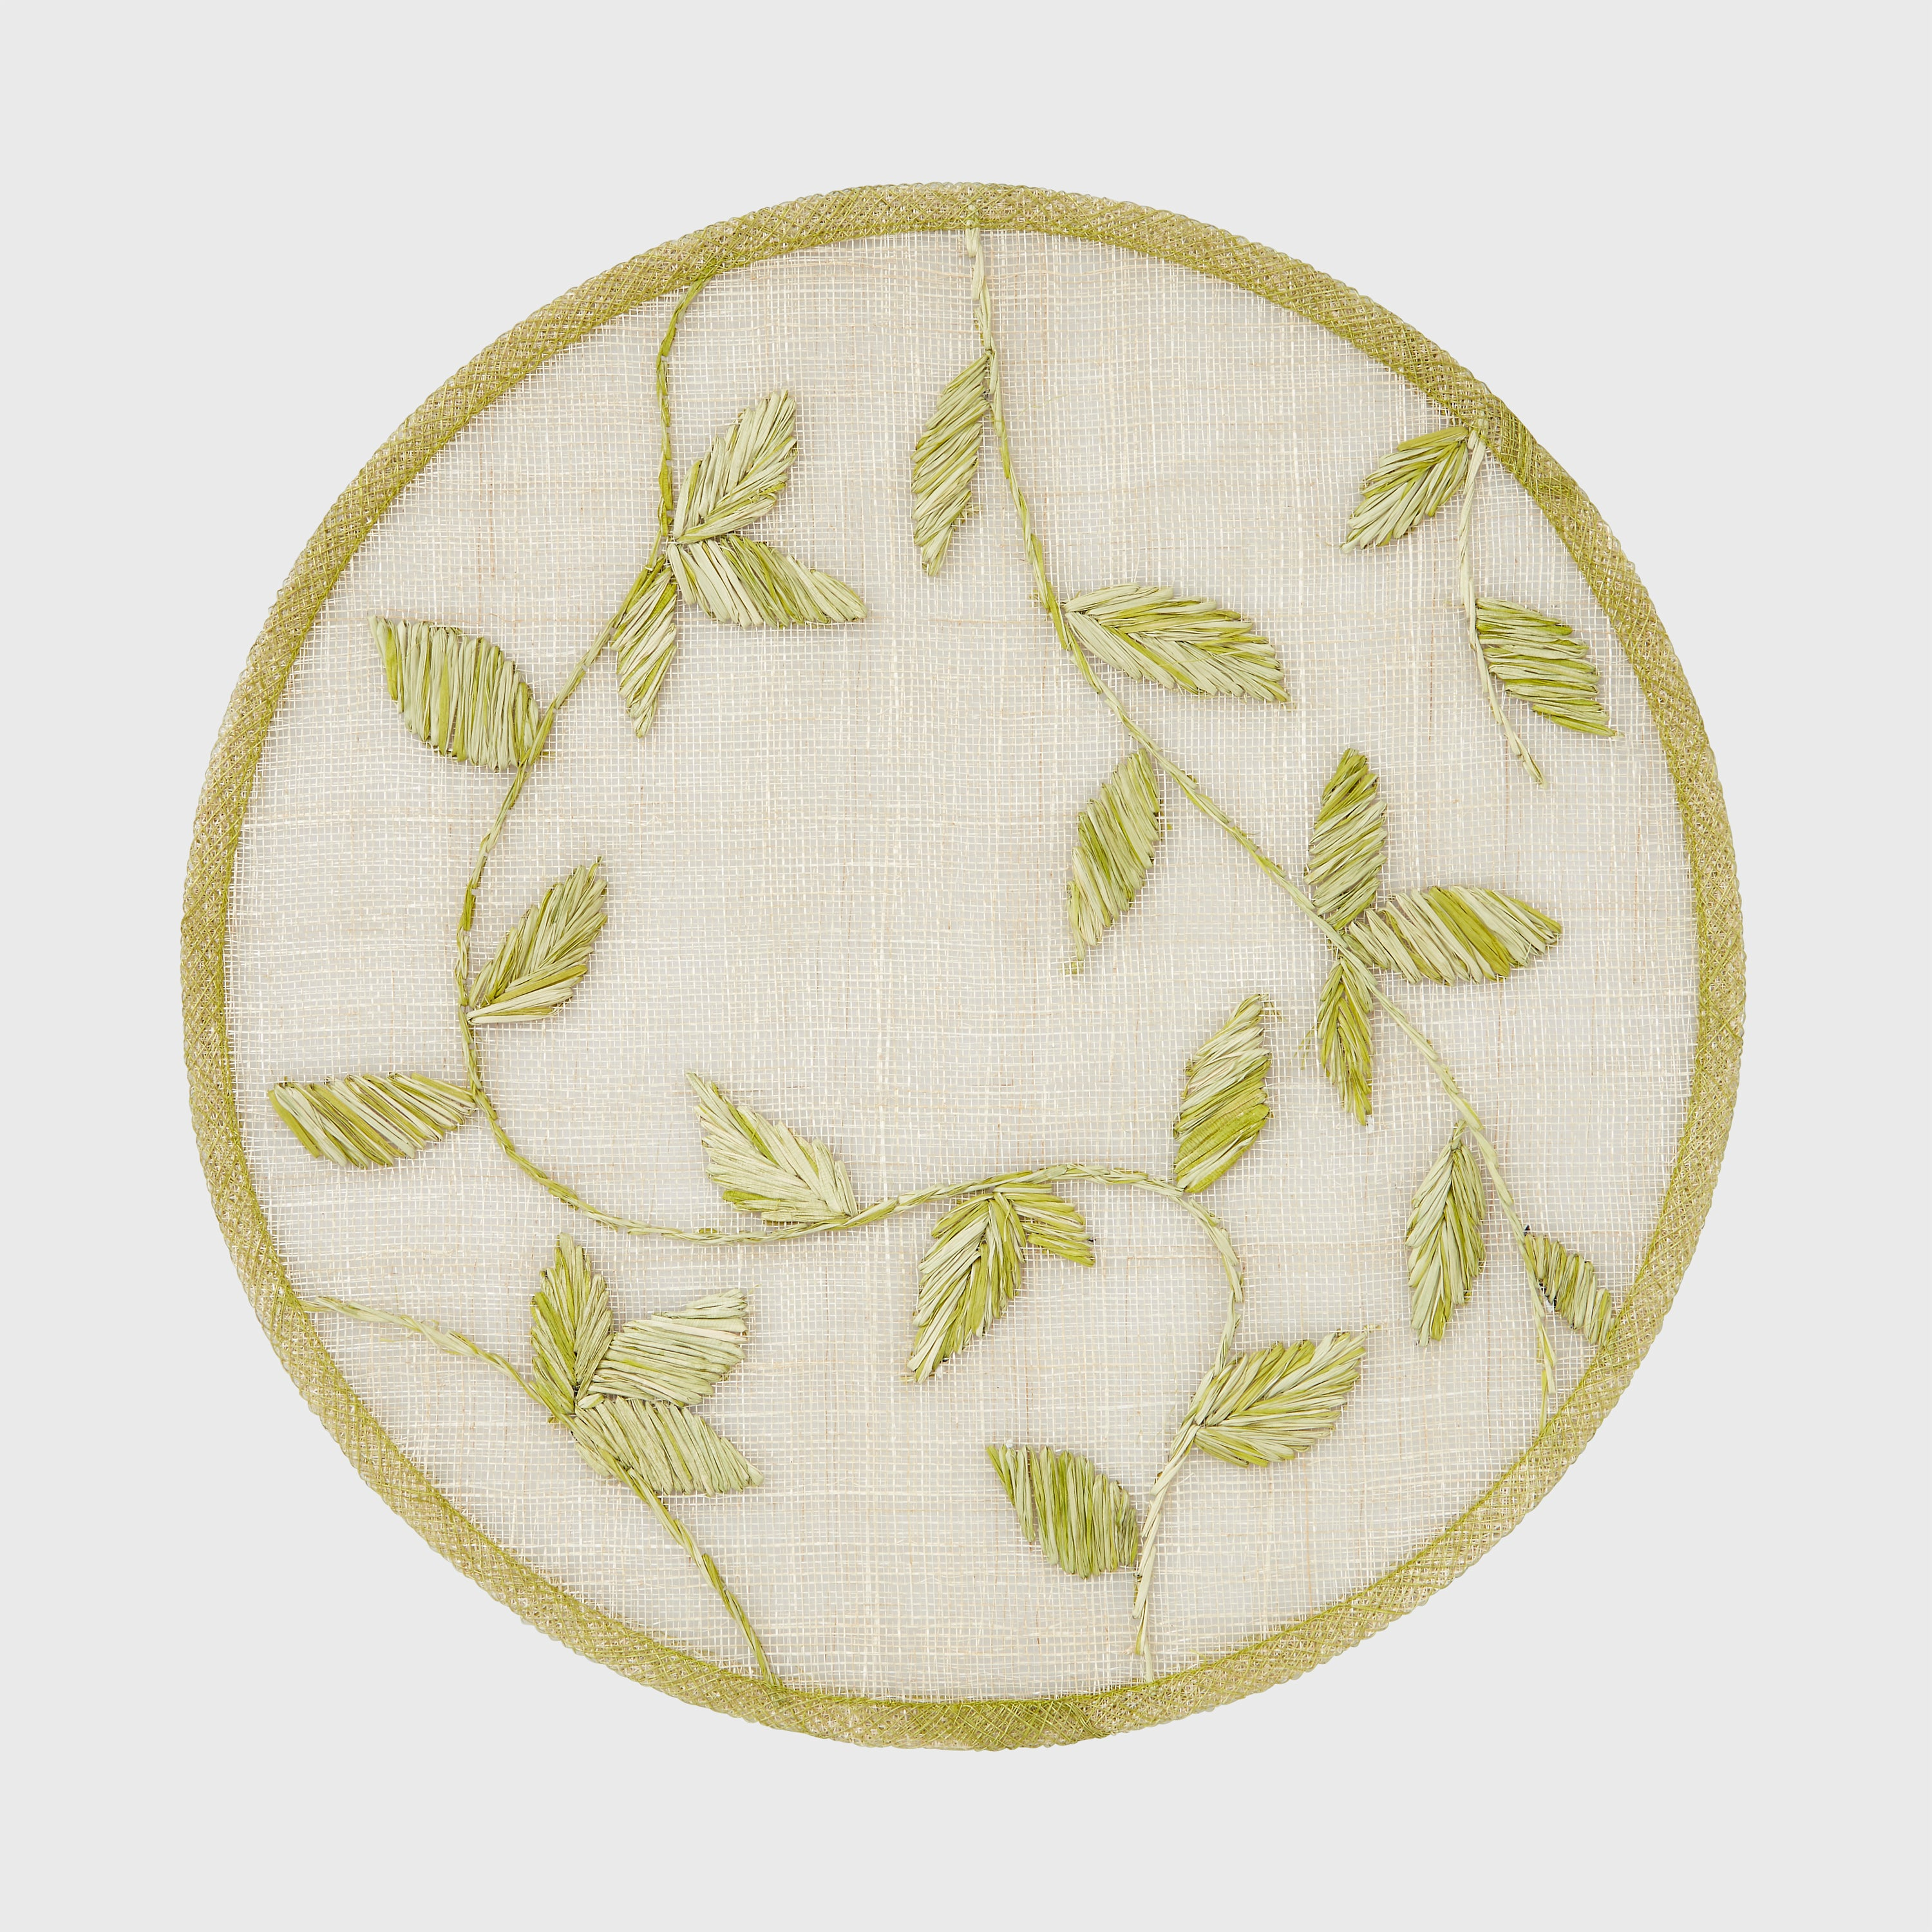 Image of Straw leaf placemat